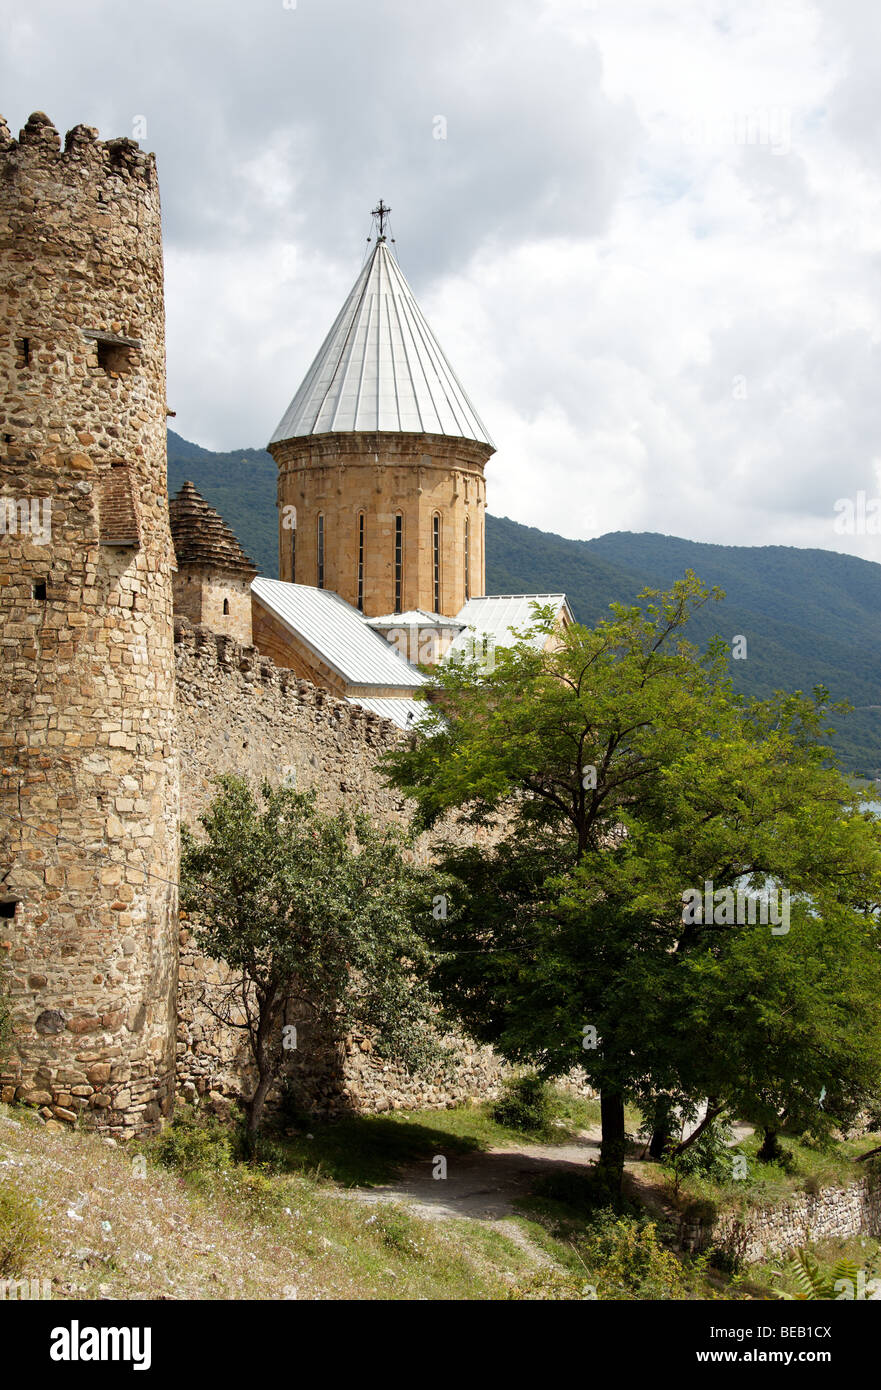 17th century fortress on the bank of the Aragvi River (Georgia), tentatively listed as a UNESCO World Heritage Site - Stock Image